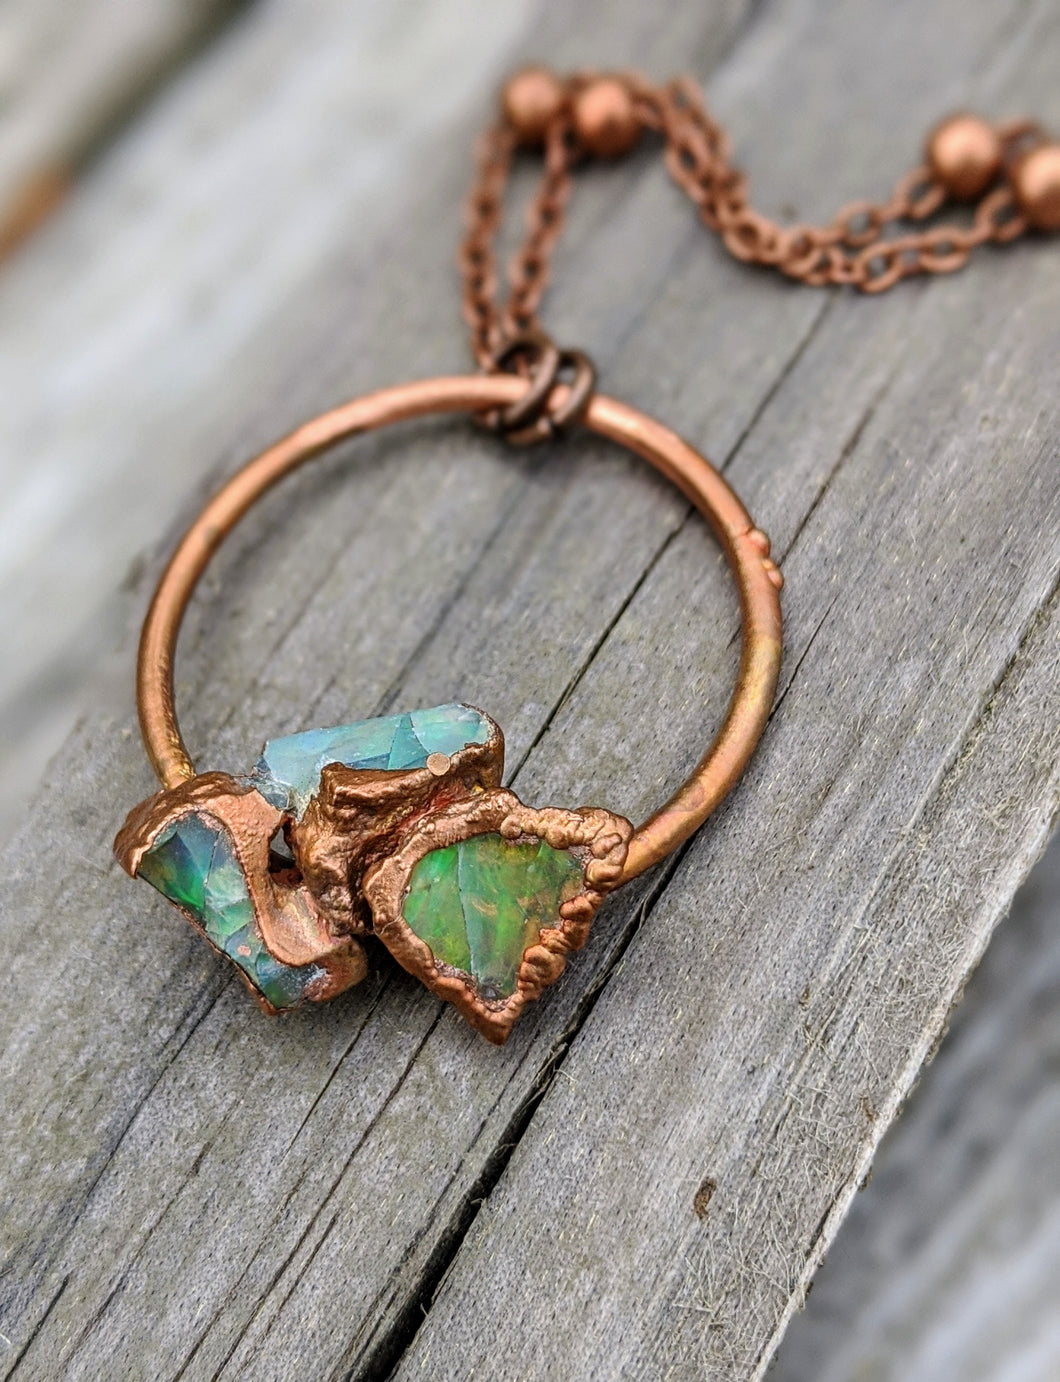 Ethiopian Opal Copper Electroformed Necklace I - Minxes' Trinkets